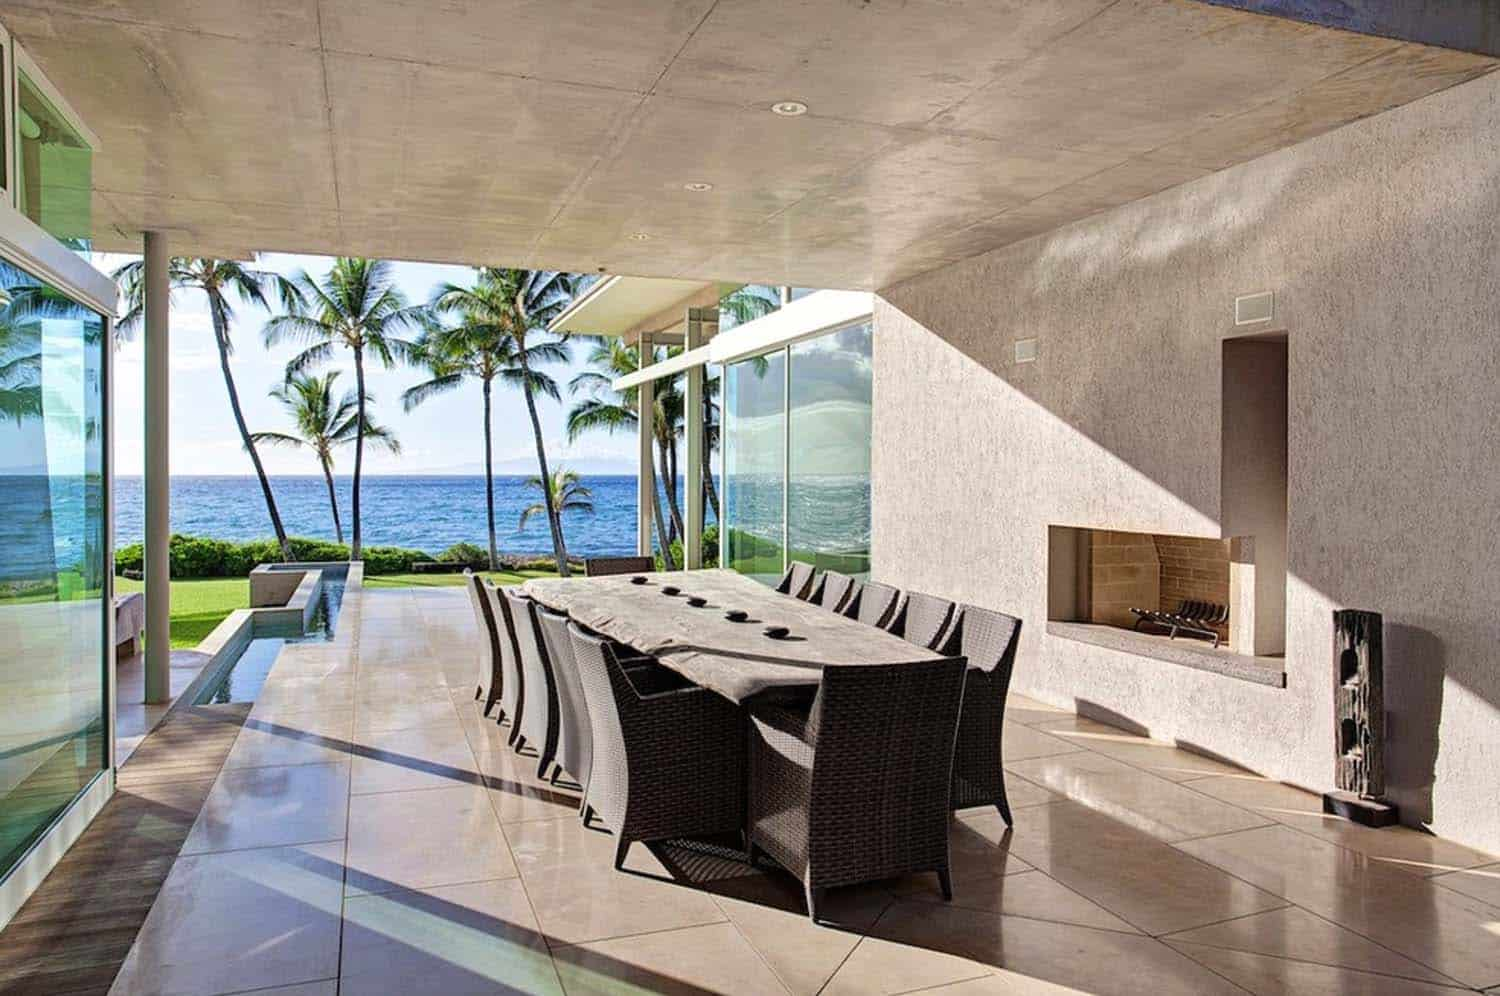 Tropical Maui Residence-Bossley Architects-17-1 Kindesign